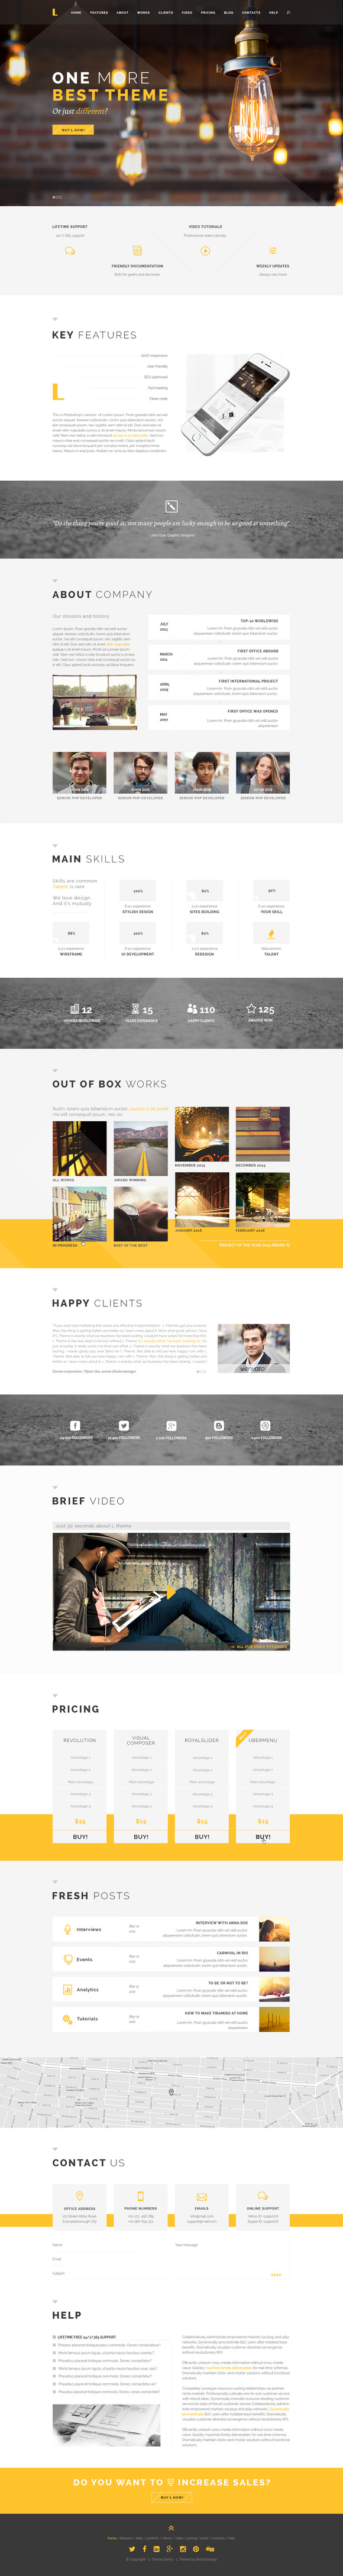 L Multpurpose OnePage PSD Template